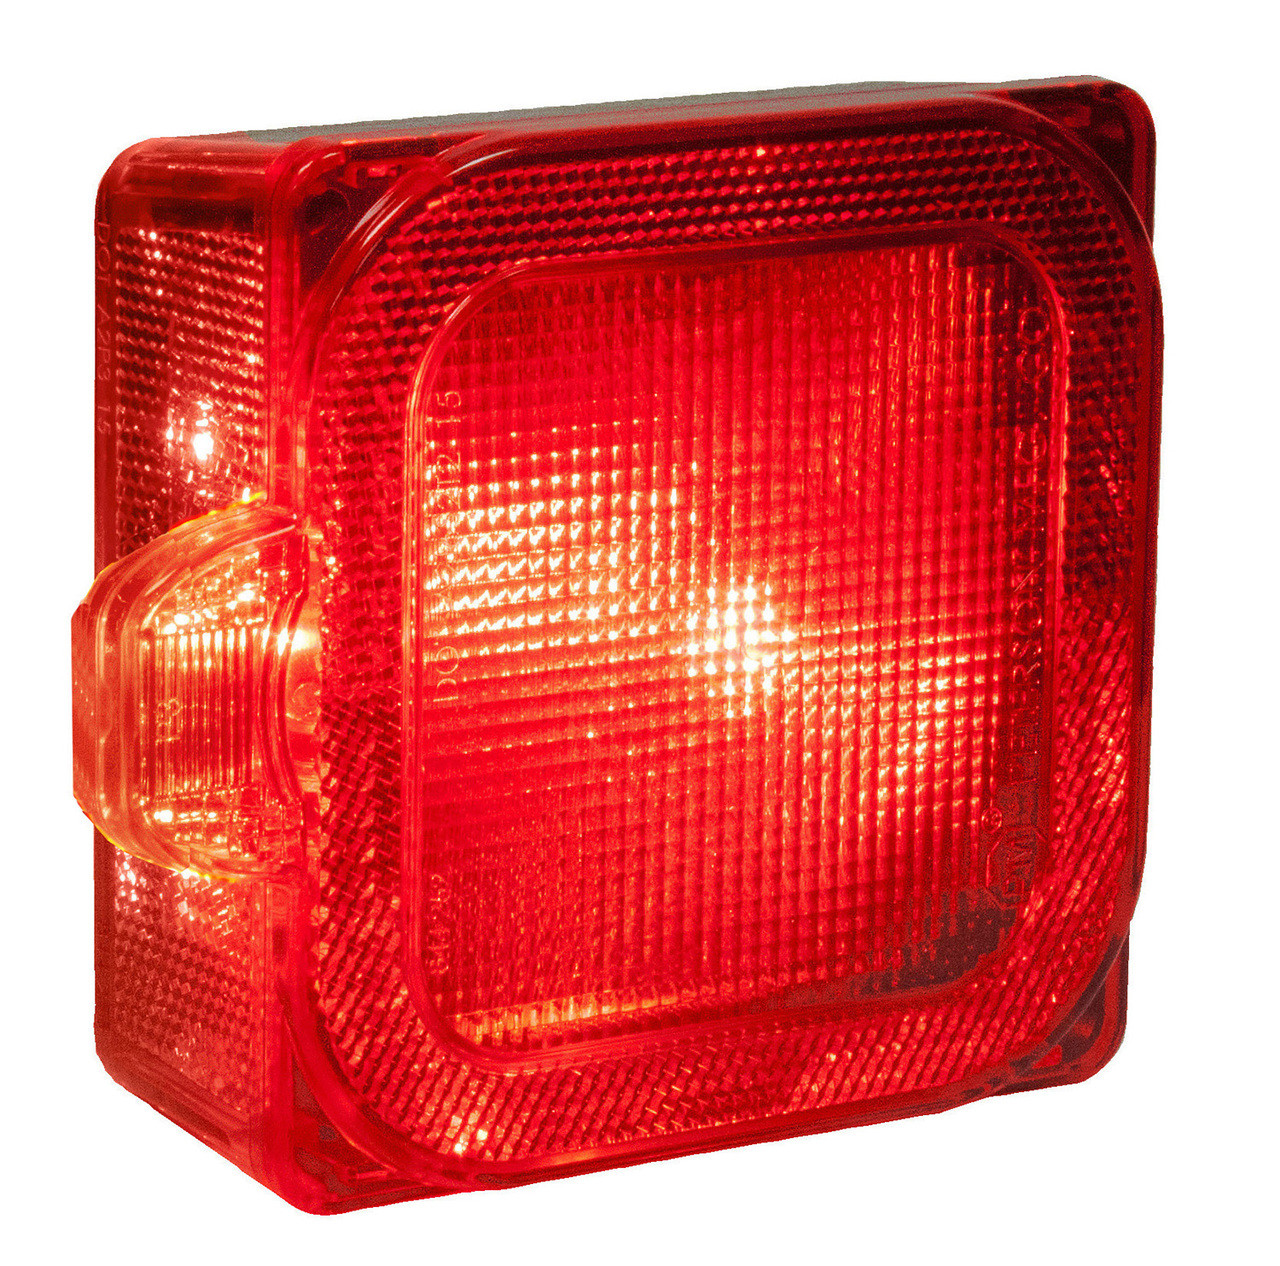 LED844L --- Square Combination LED Left Low Profile Tail Light and Side Marker